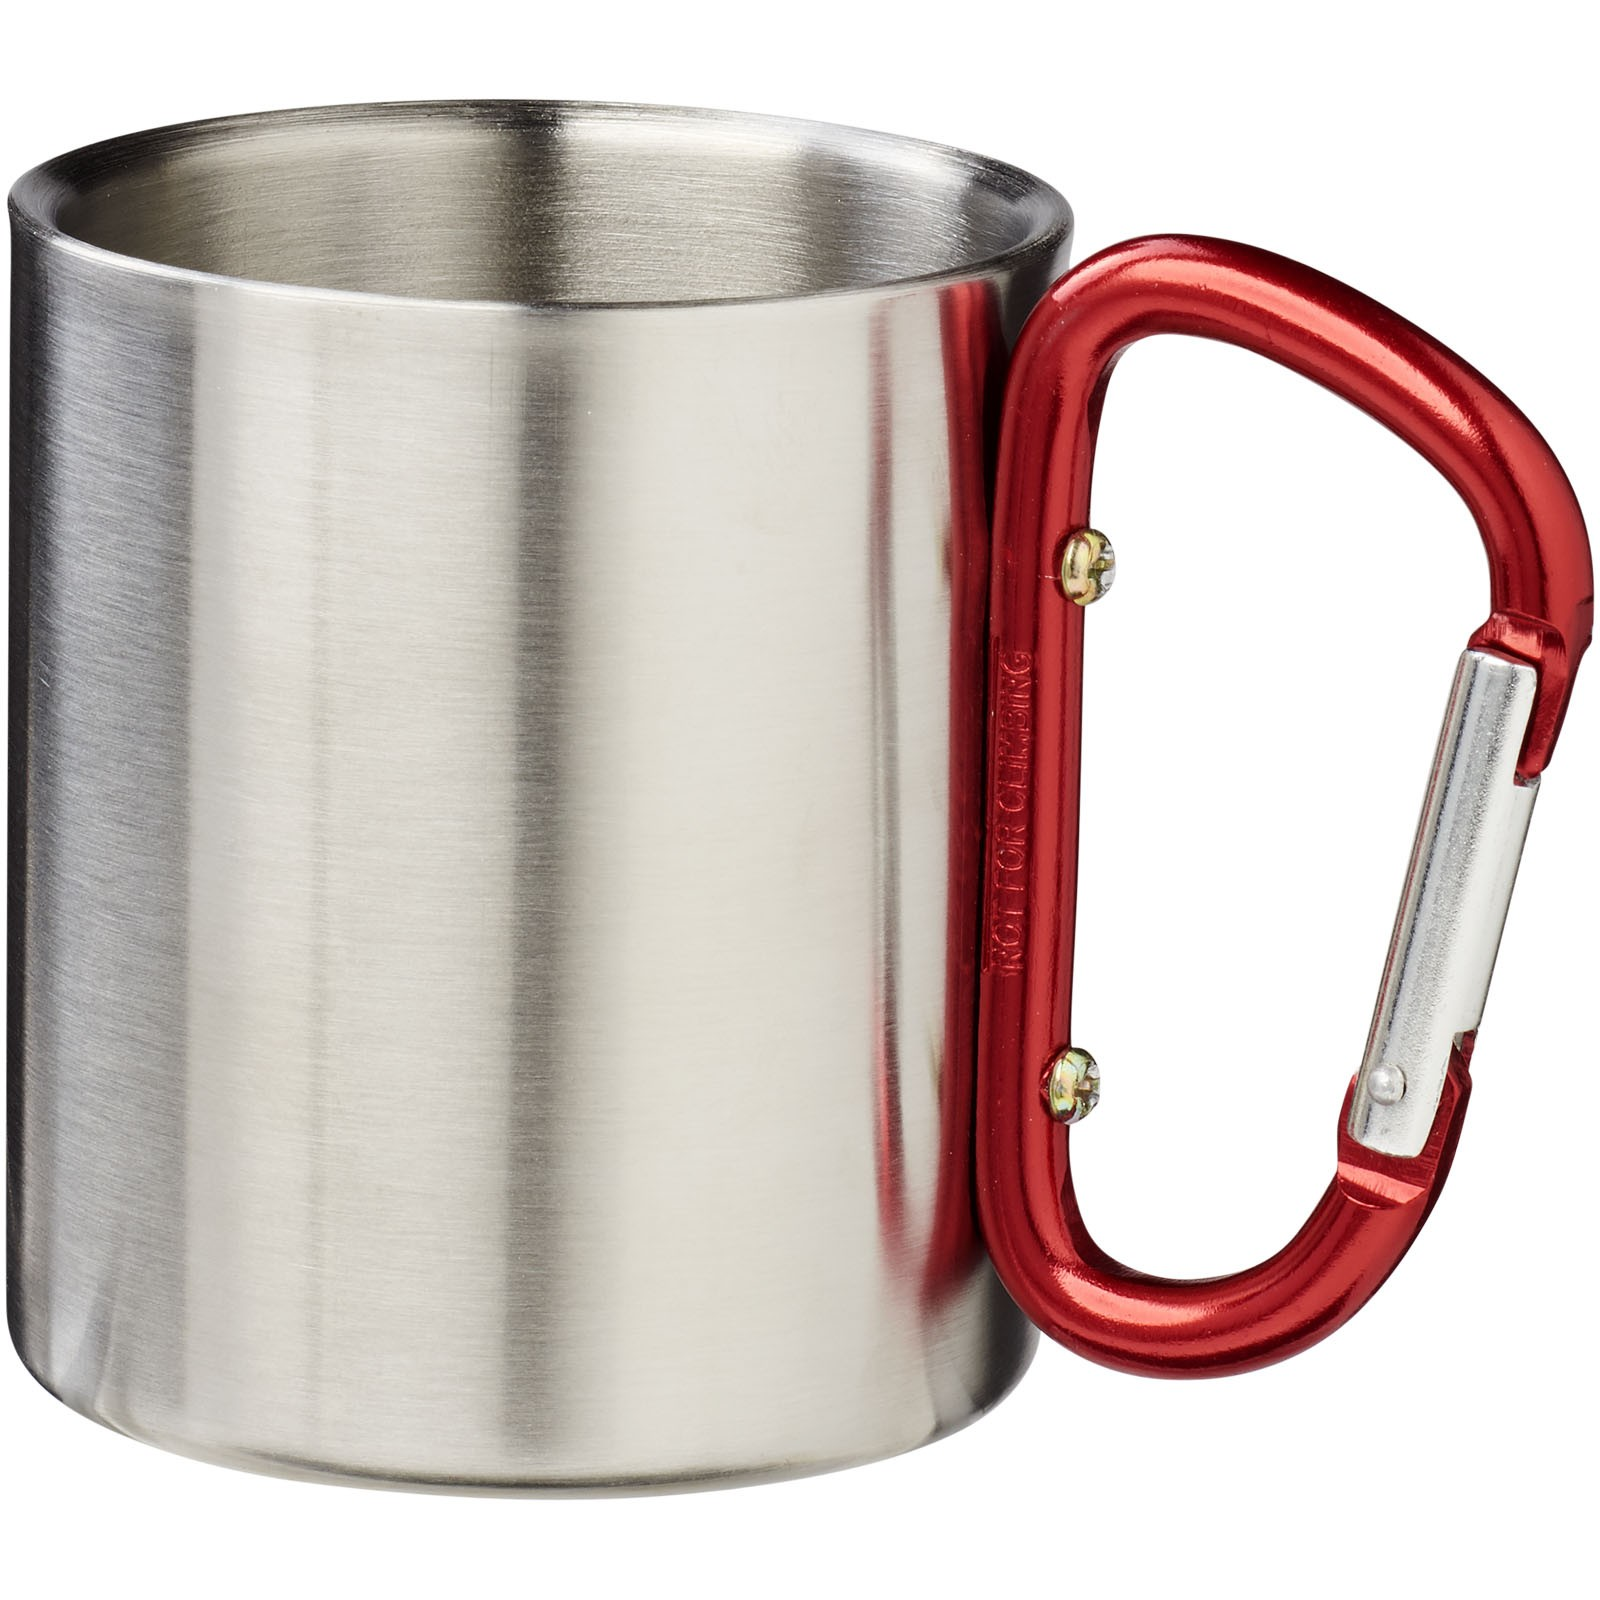 Alps 200 ml insulated mug with carabiner - Red